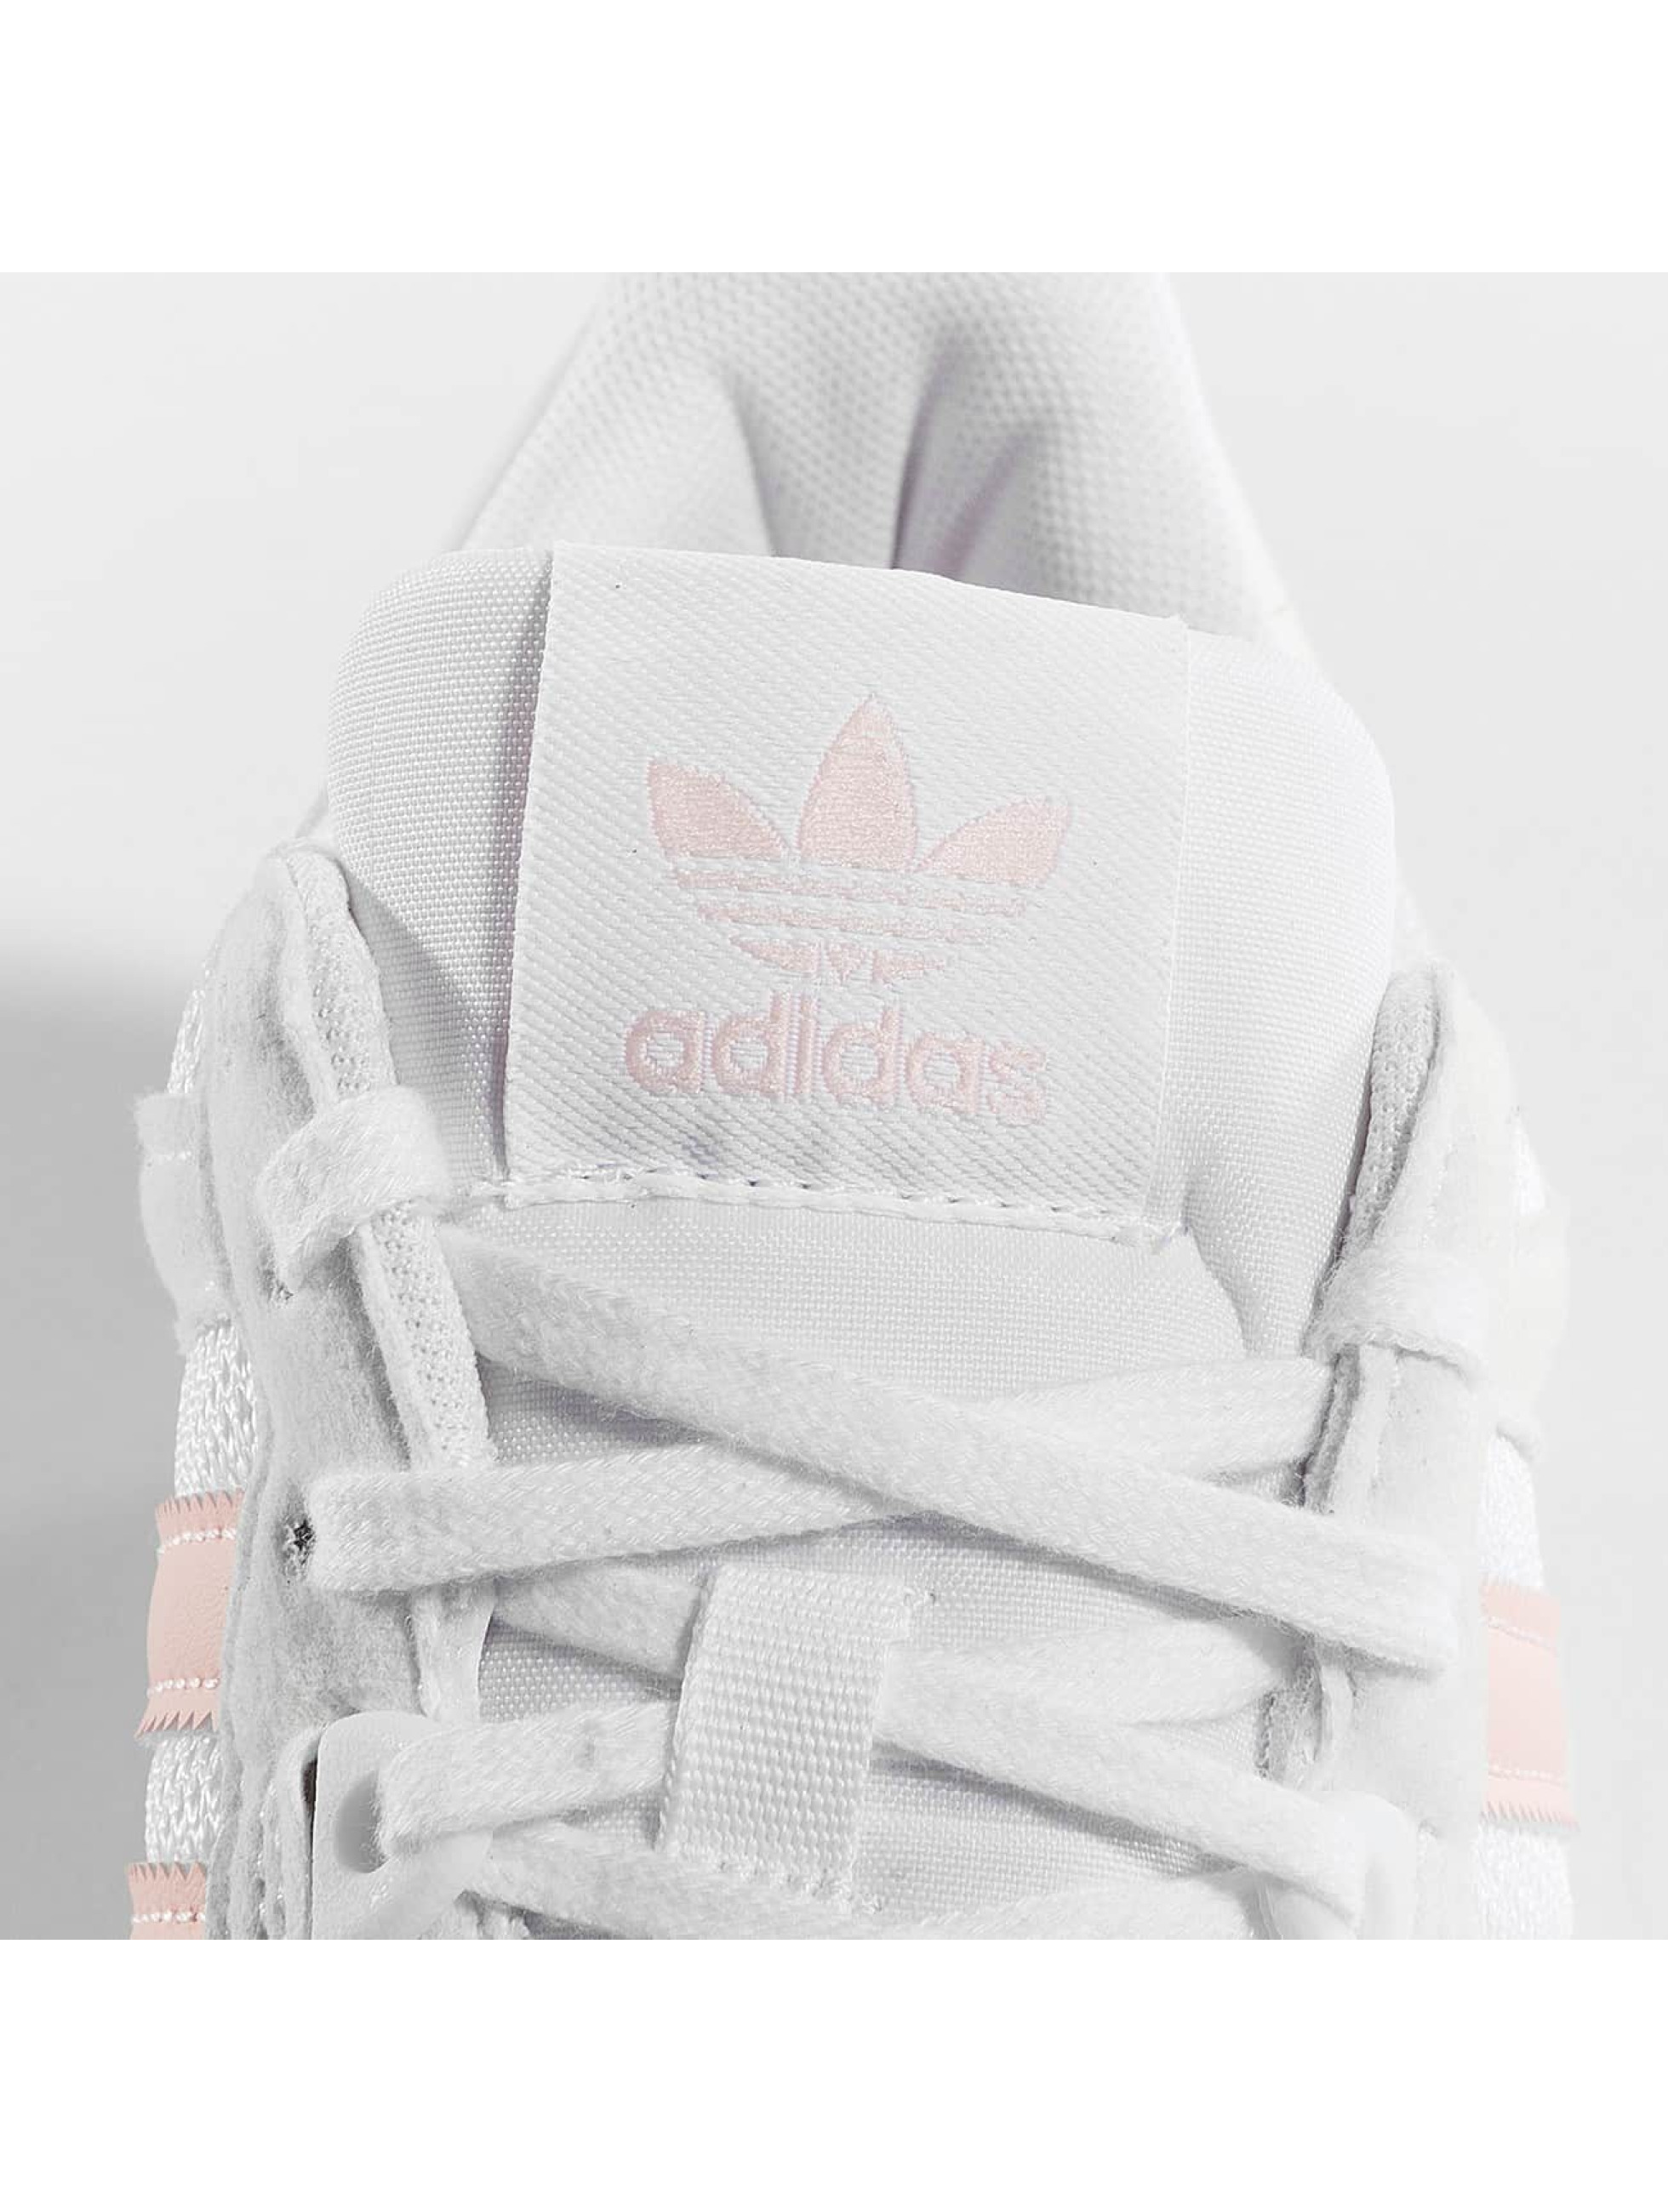 adidas Sneakers ZX 700 W white